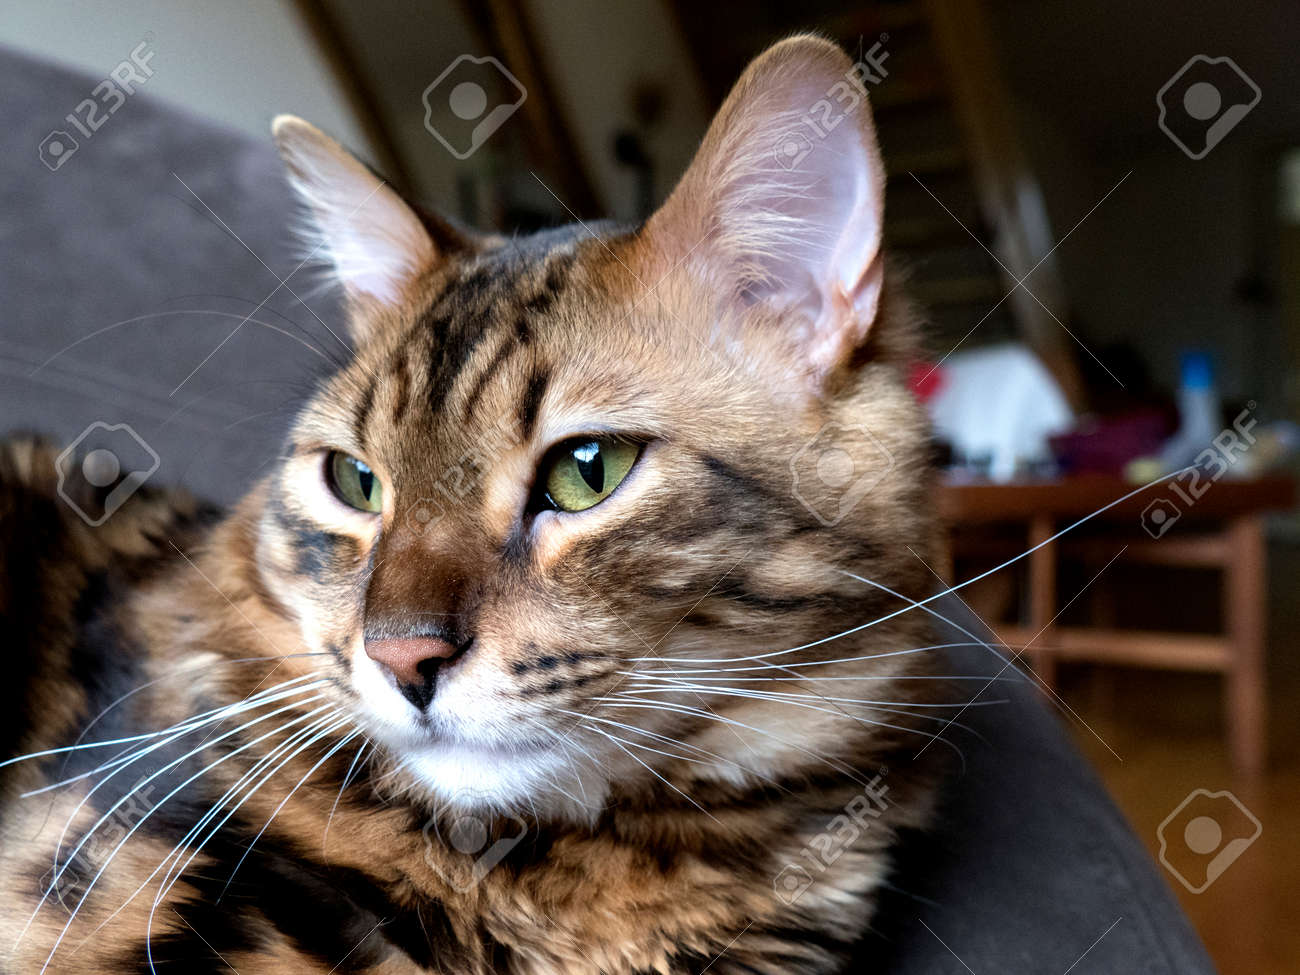 40420ec6c4 Bengal cat  Marble bengal cashmere cat taken at home Stock Photo - 56219715